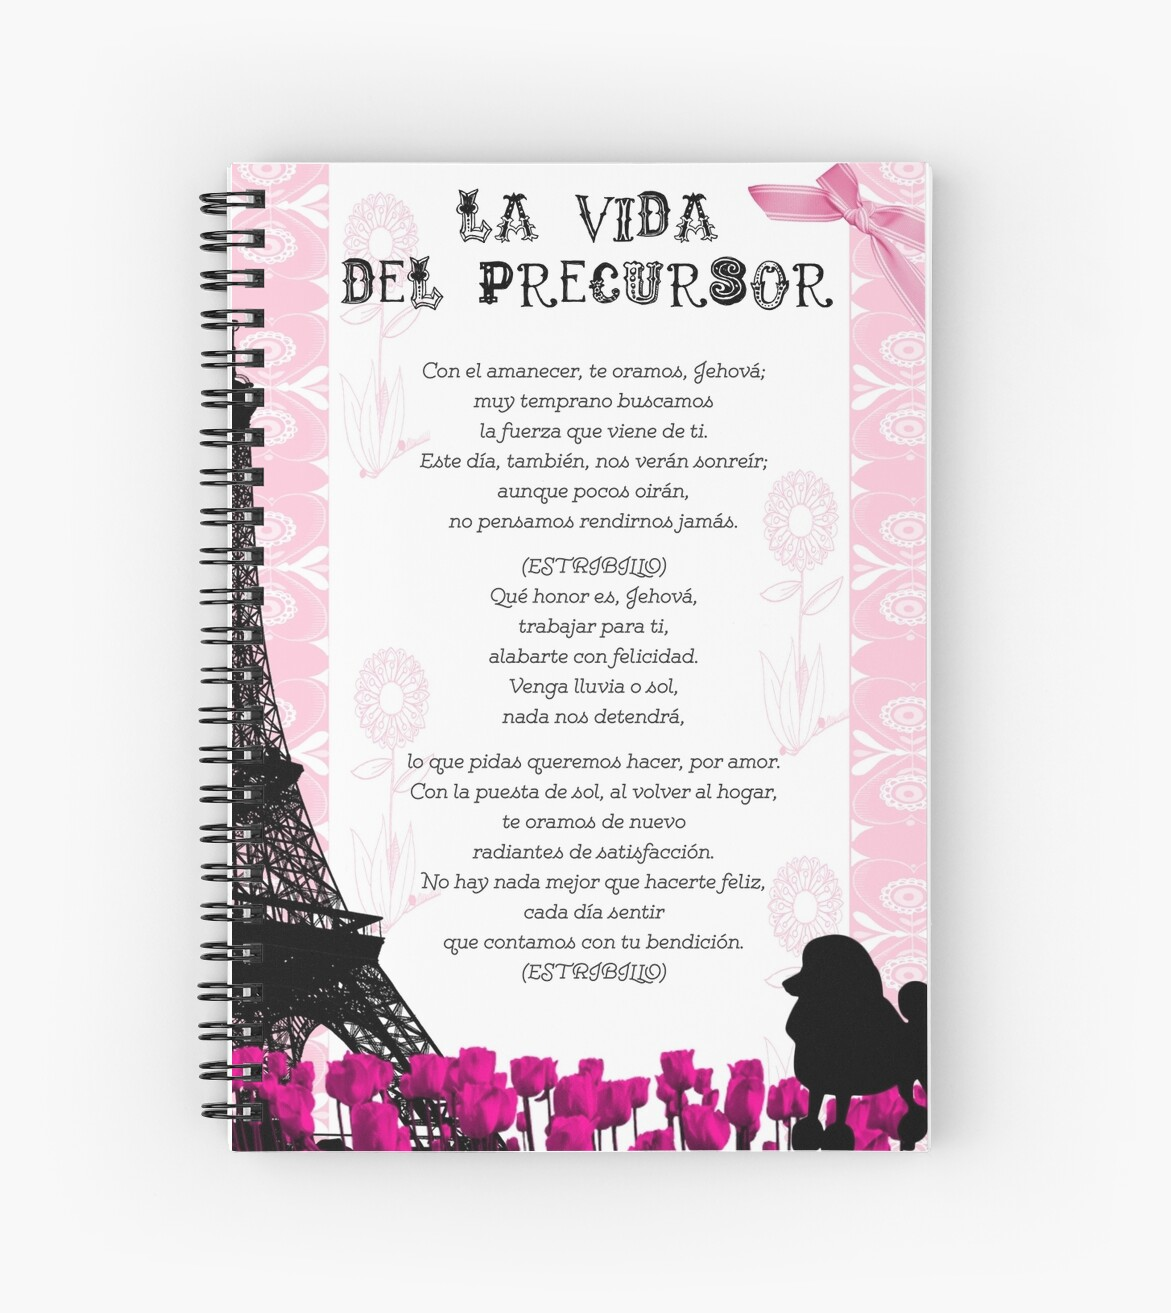 La vida del precursor (The Life of a Pioneer) by JW ARTS & CRAFTS